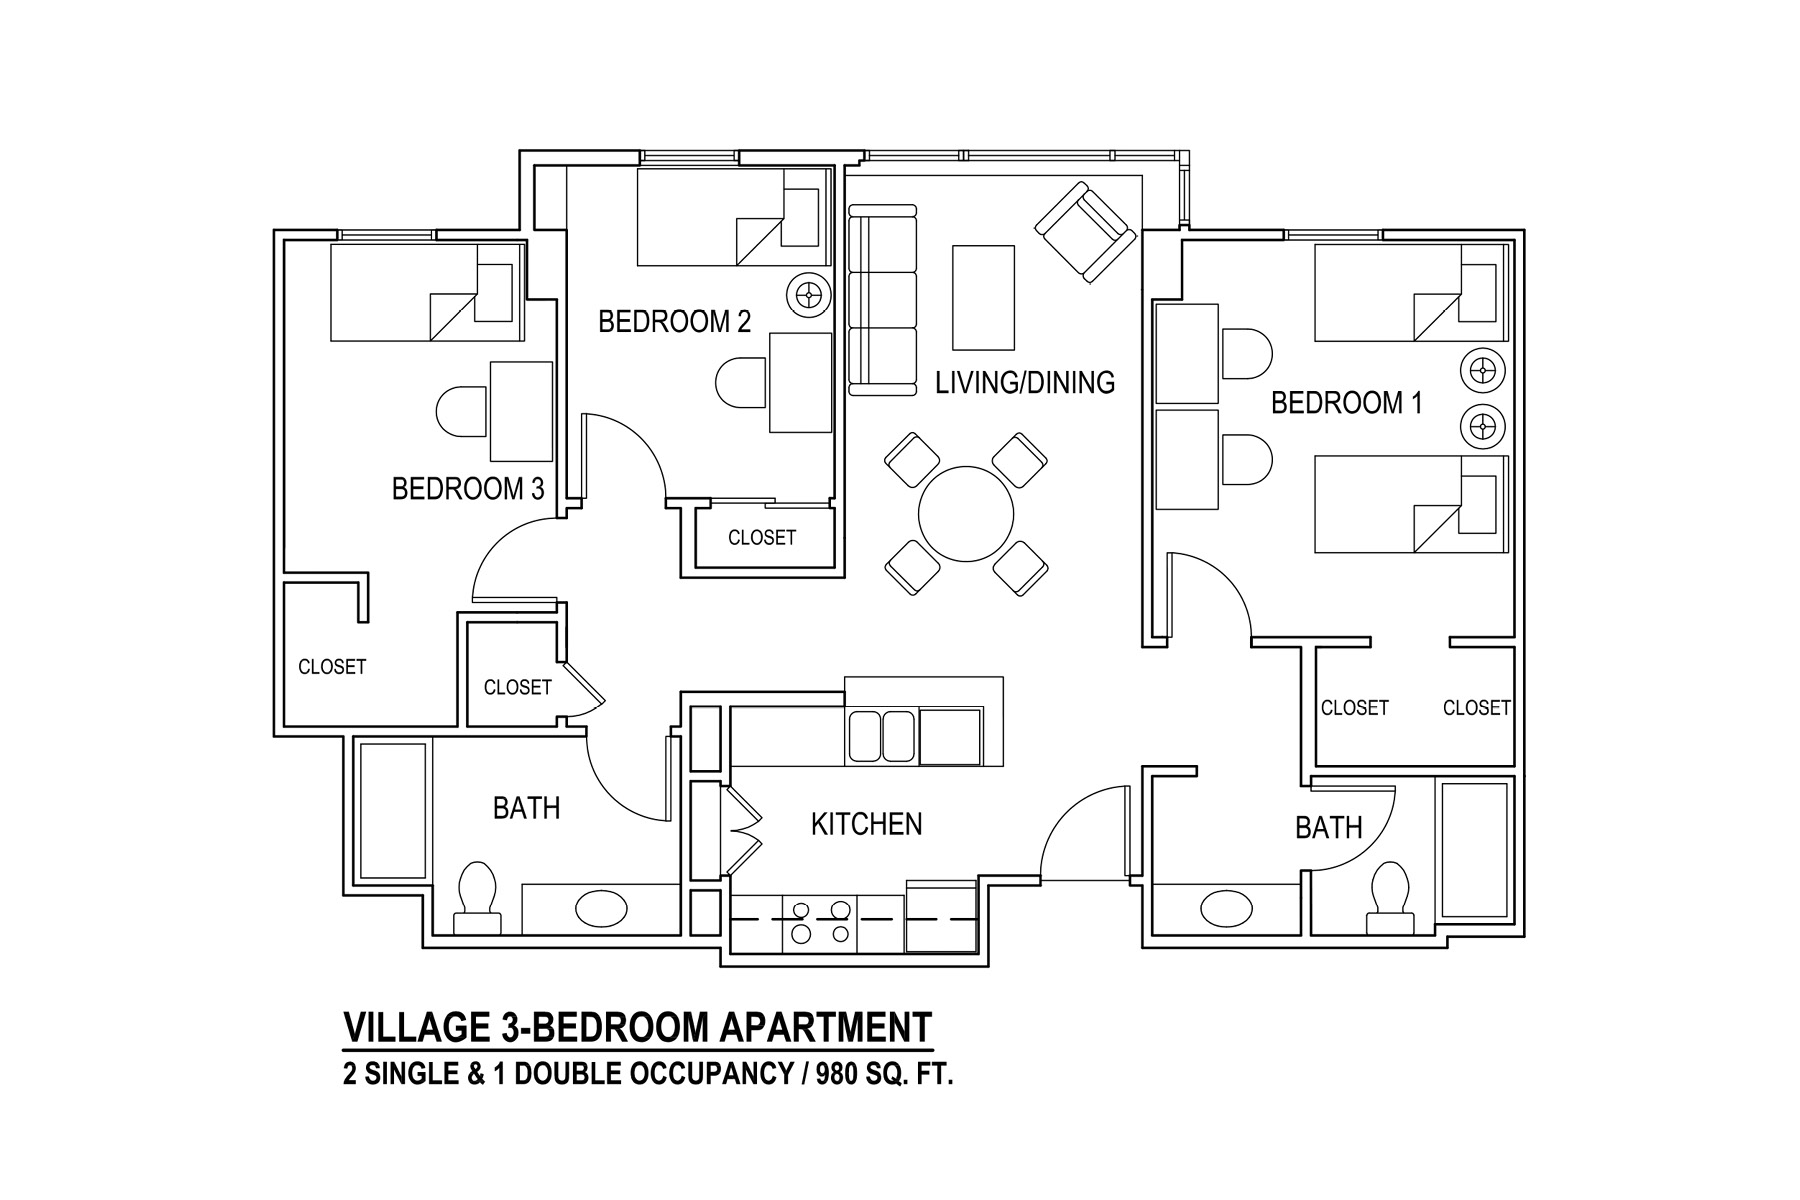 Village 3-Bedroom Apartment 2 Single & 1 Double Occupancy / 980 sq. ft.